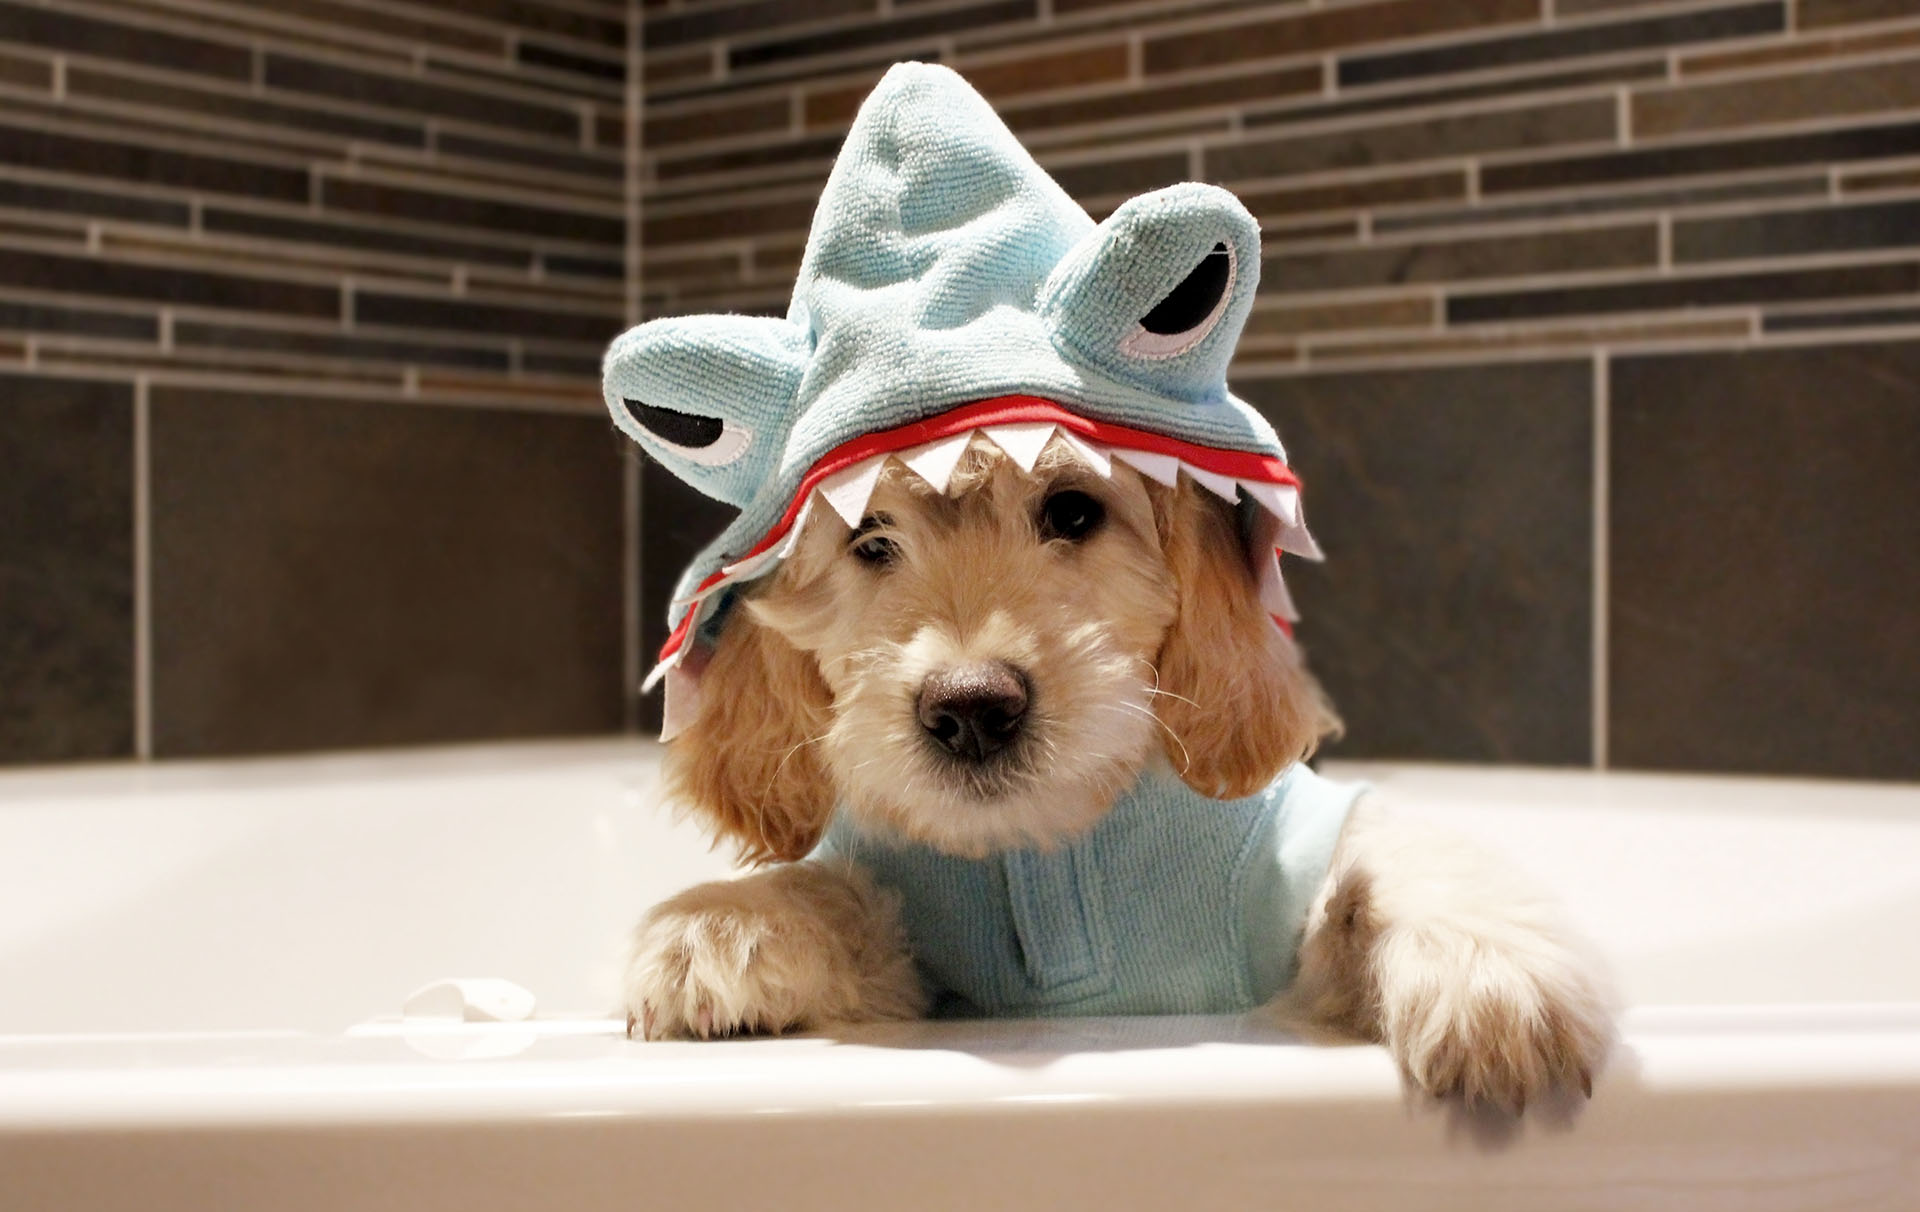 baby shark dog costume